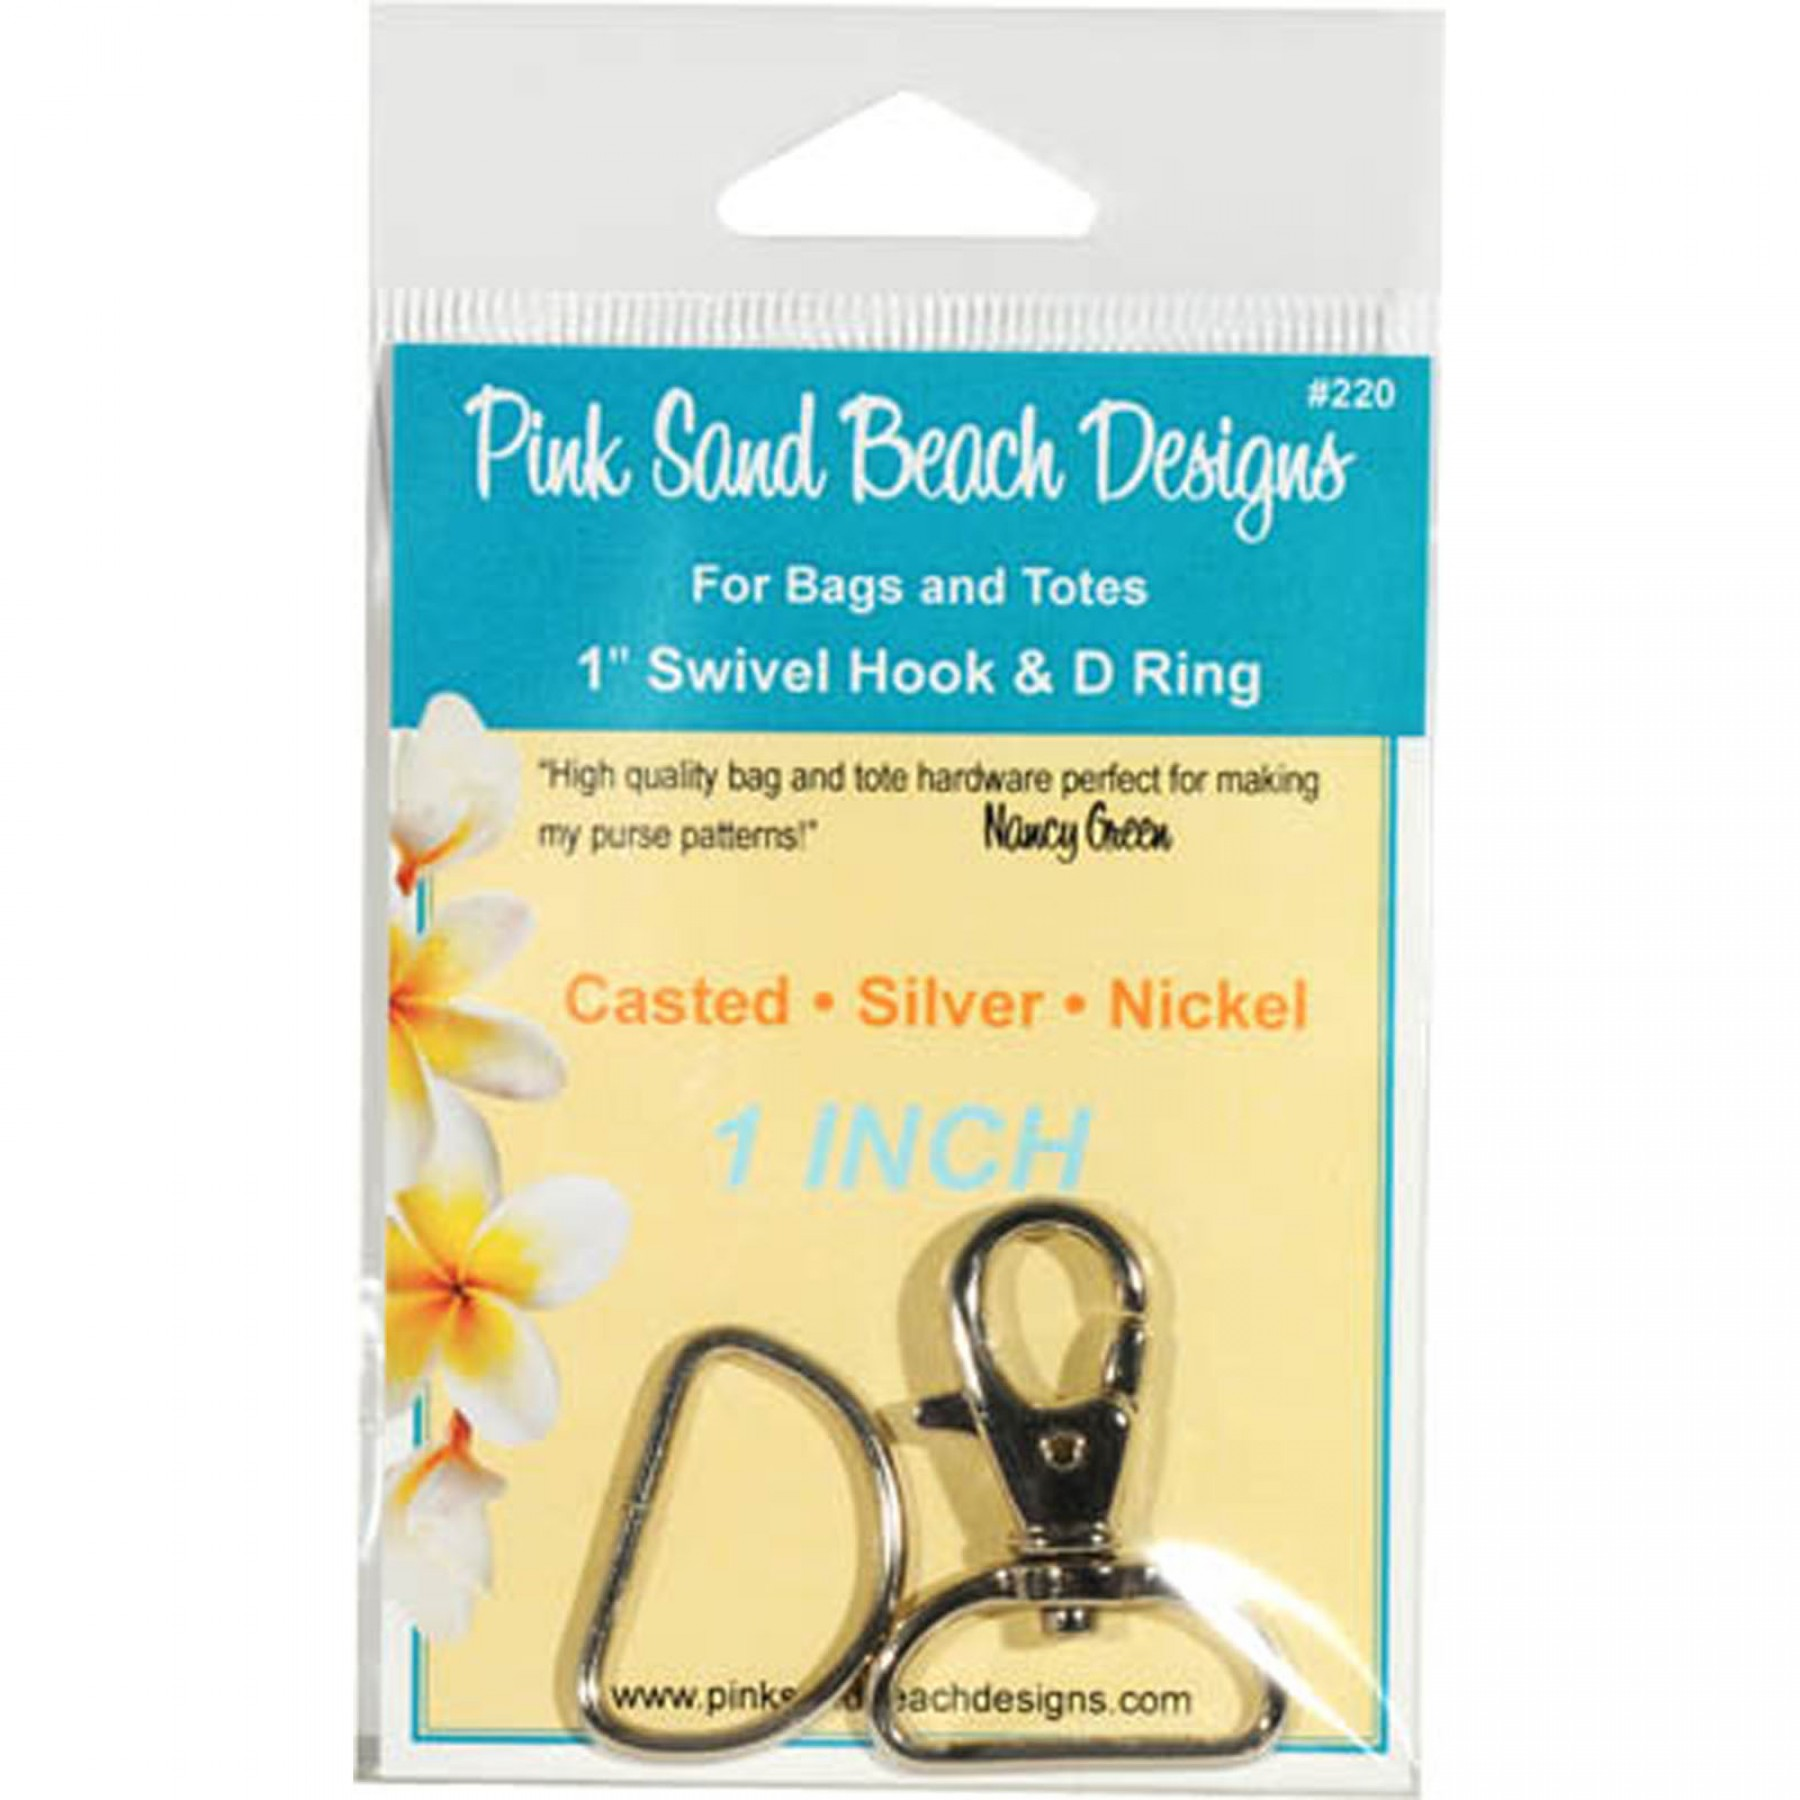 PINK SAND BEACH DESIGN PSB220  S SWIVEL HOOK AND D RING 1